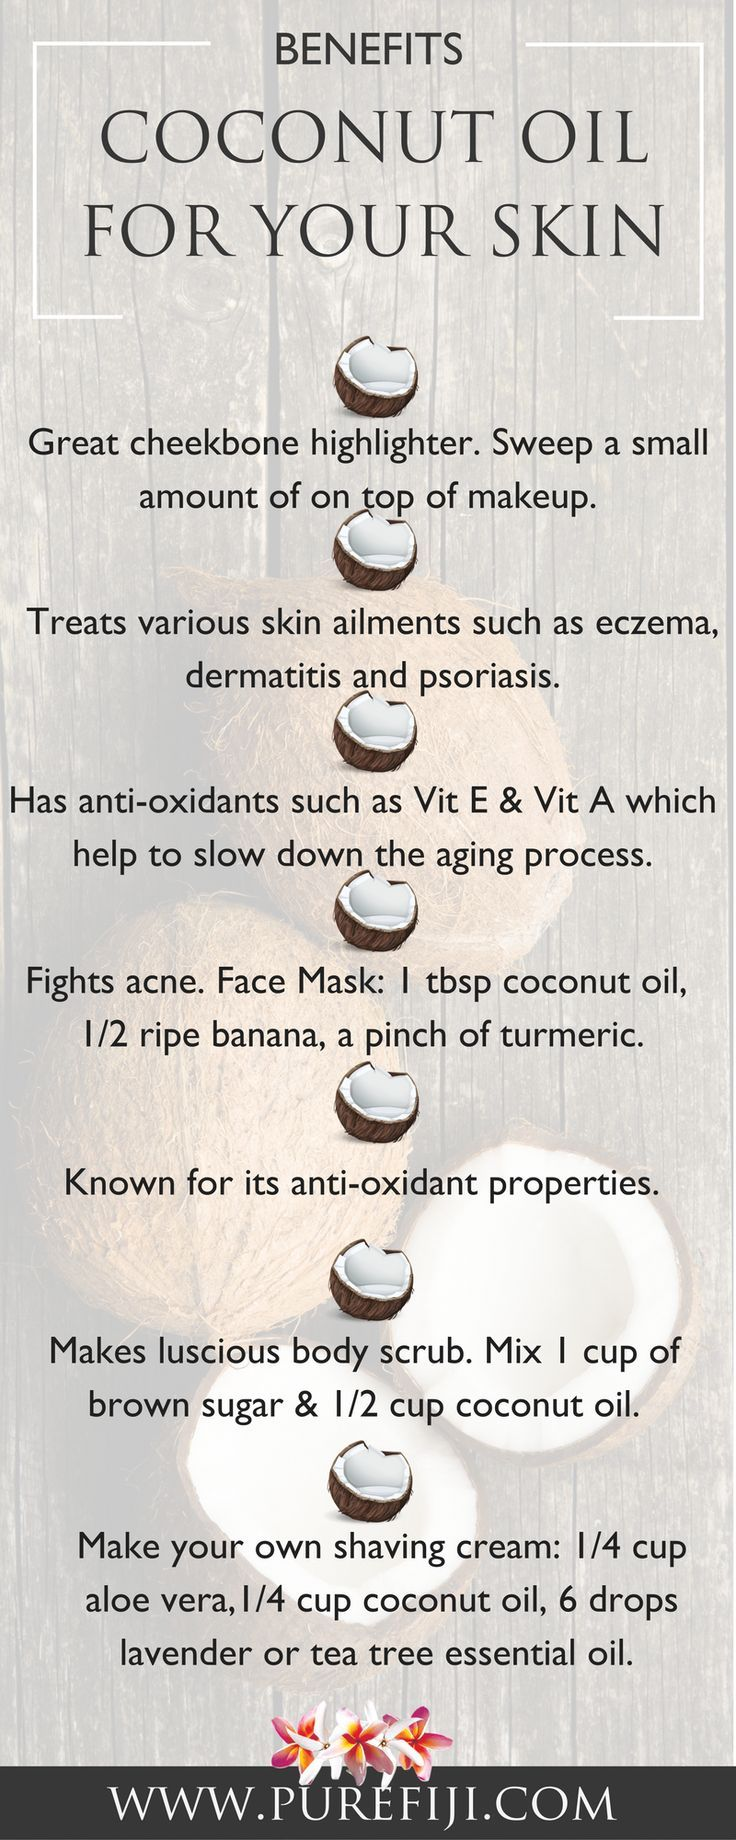 Find here how to use coconut oil for beautiful glowing skin and shiny hair. Get yourself some coconut oil and bring your skin back to its natural beauty at http://www.purefiji.com/blog/benefits-coconut-oil/